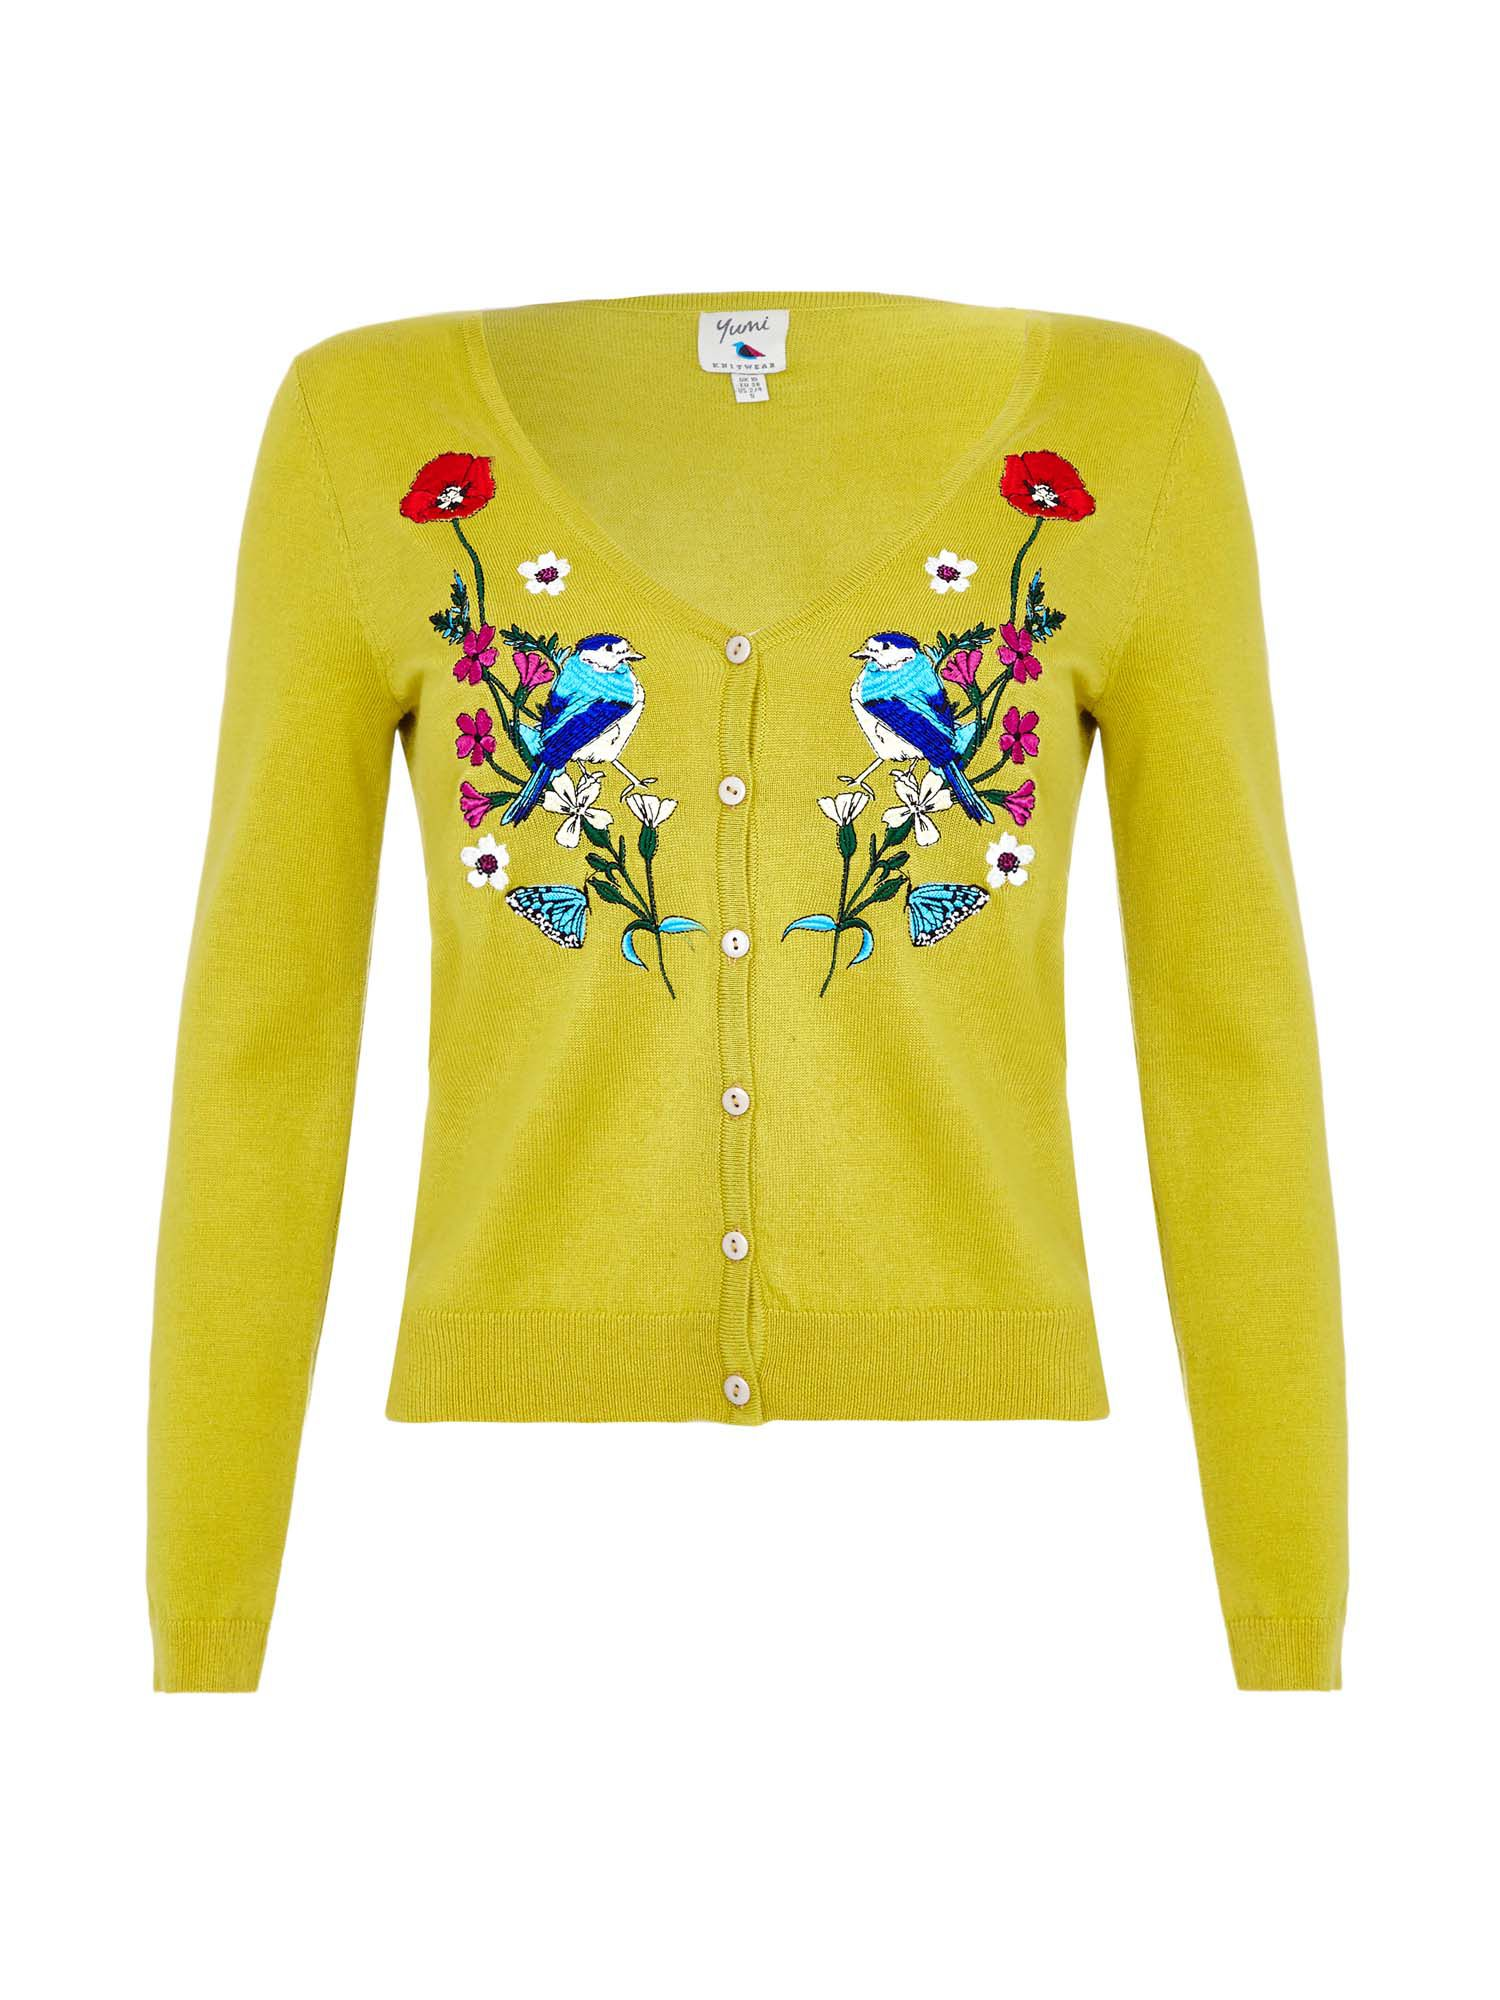 Retro Vintage Sweaters Yumi Floral Bird Embroidered Cardigan Yellow £60.00 AT vintagedancer.com